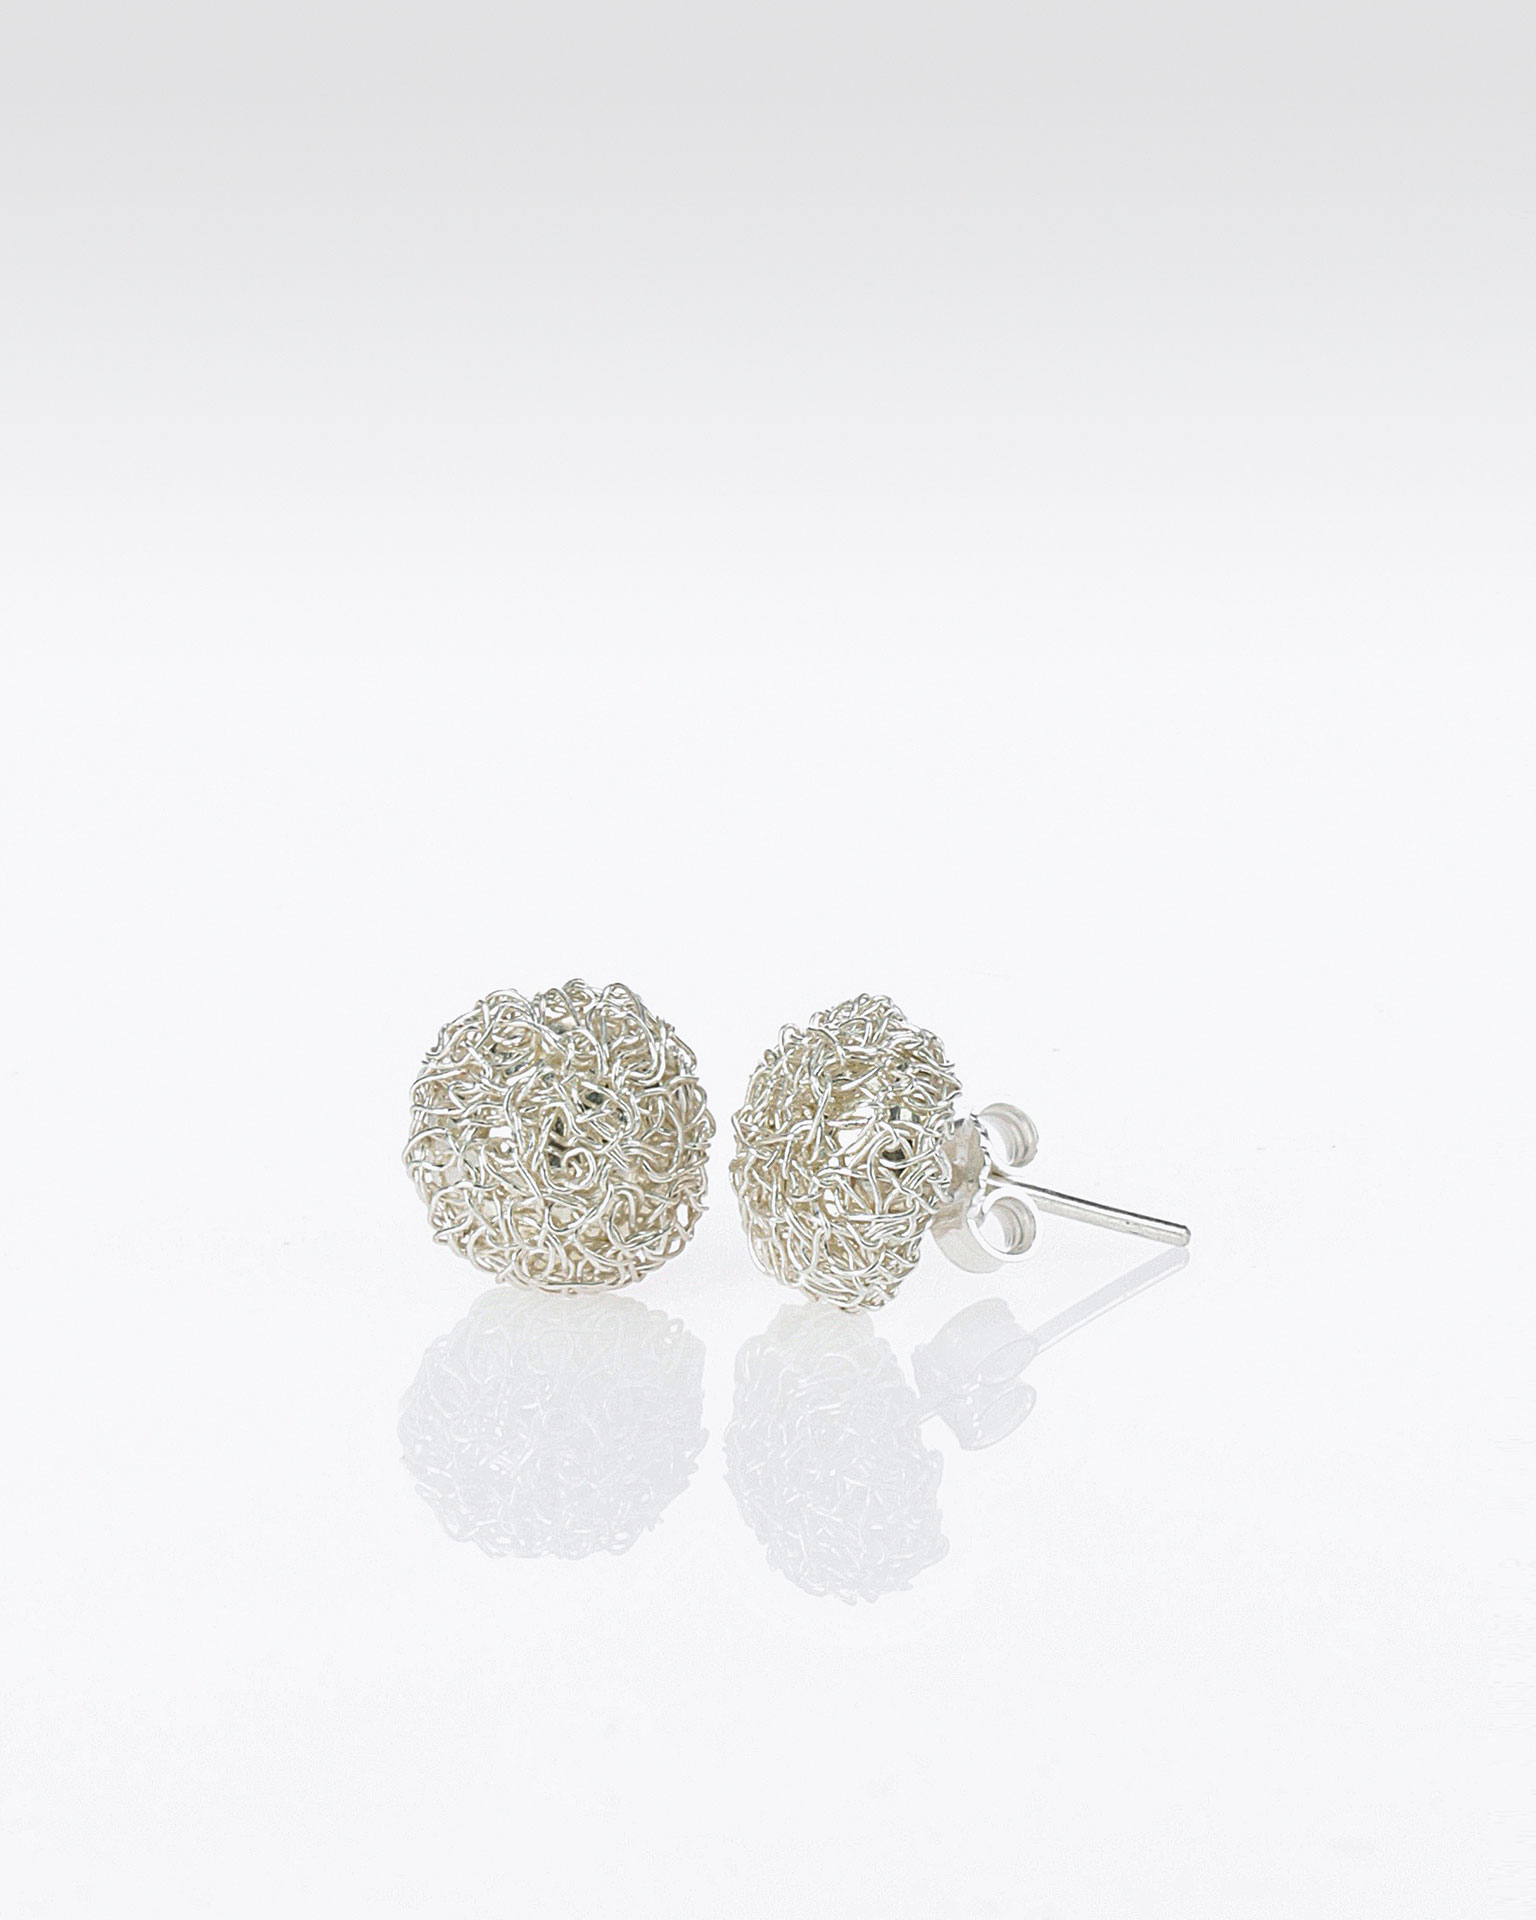 P48 jewelled silver wire ball earrings, in silver. 2019 AIRE BARCELONA Collection.